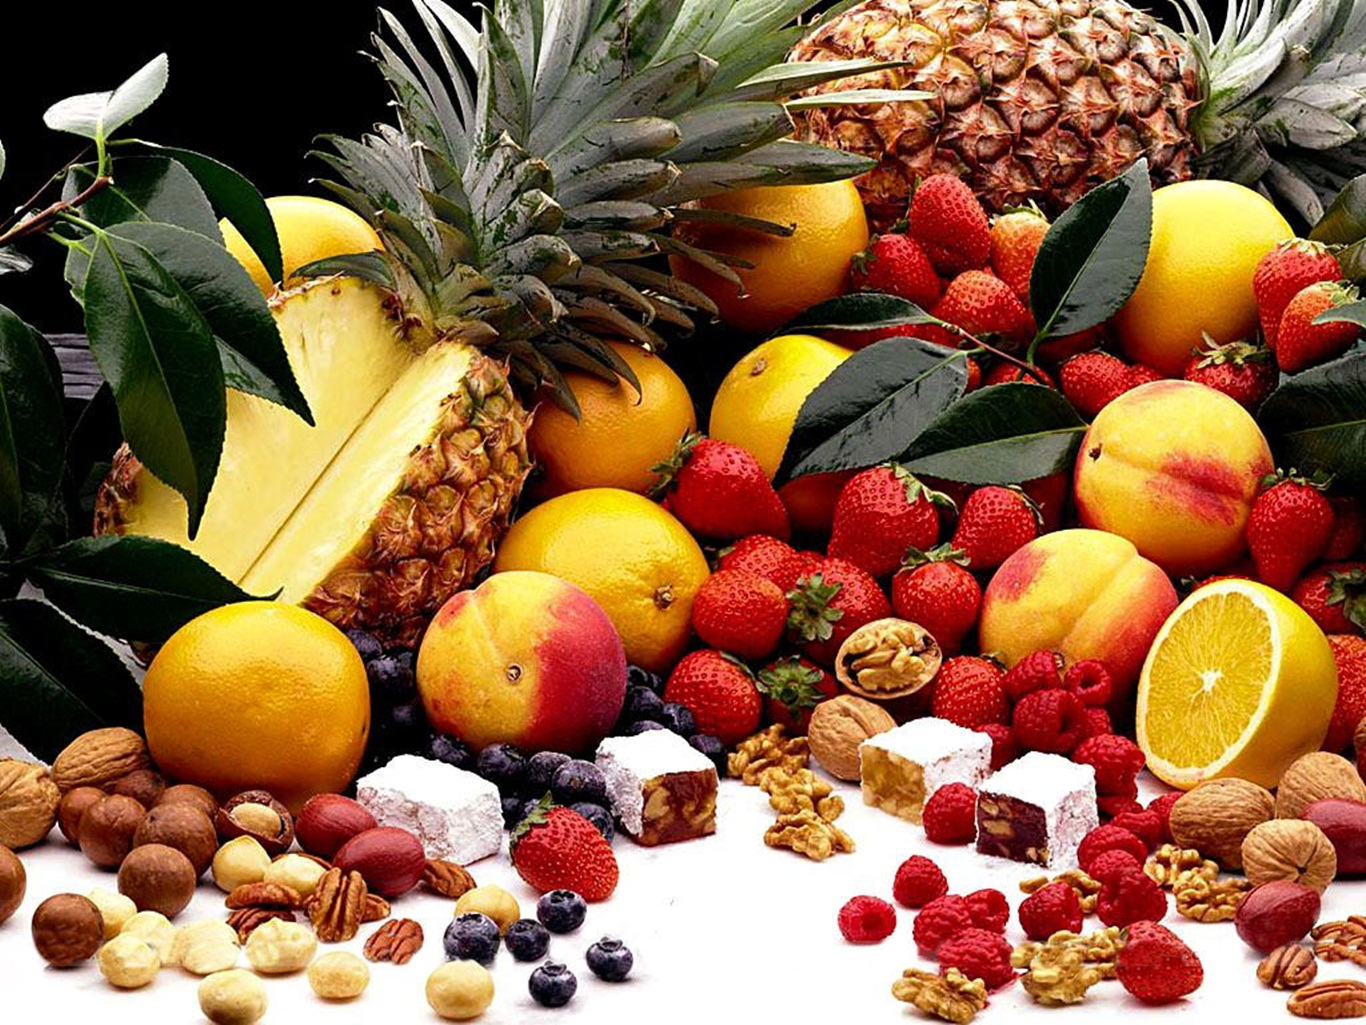 fruits-wallpapers-20-photos- (15)